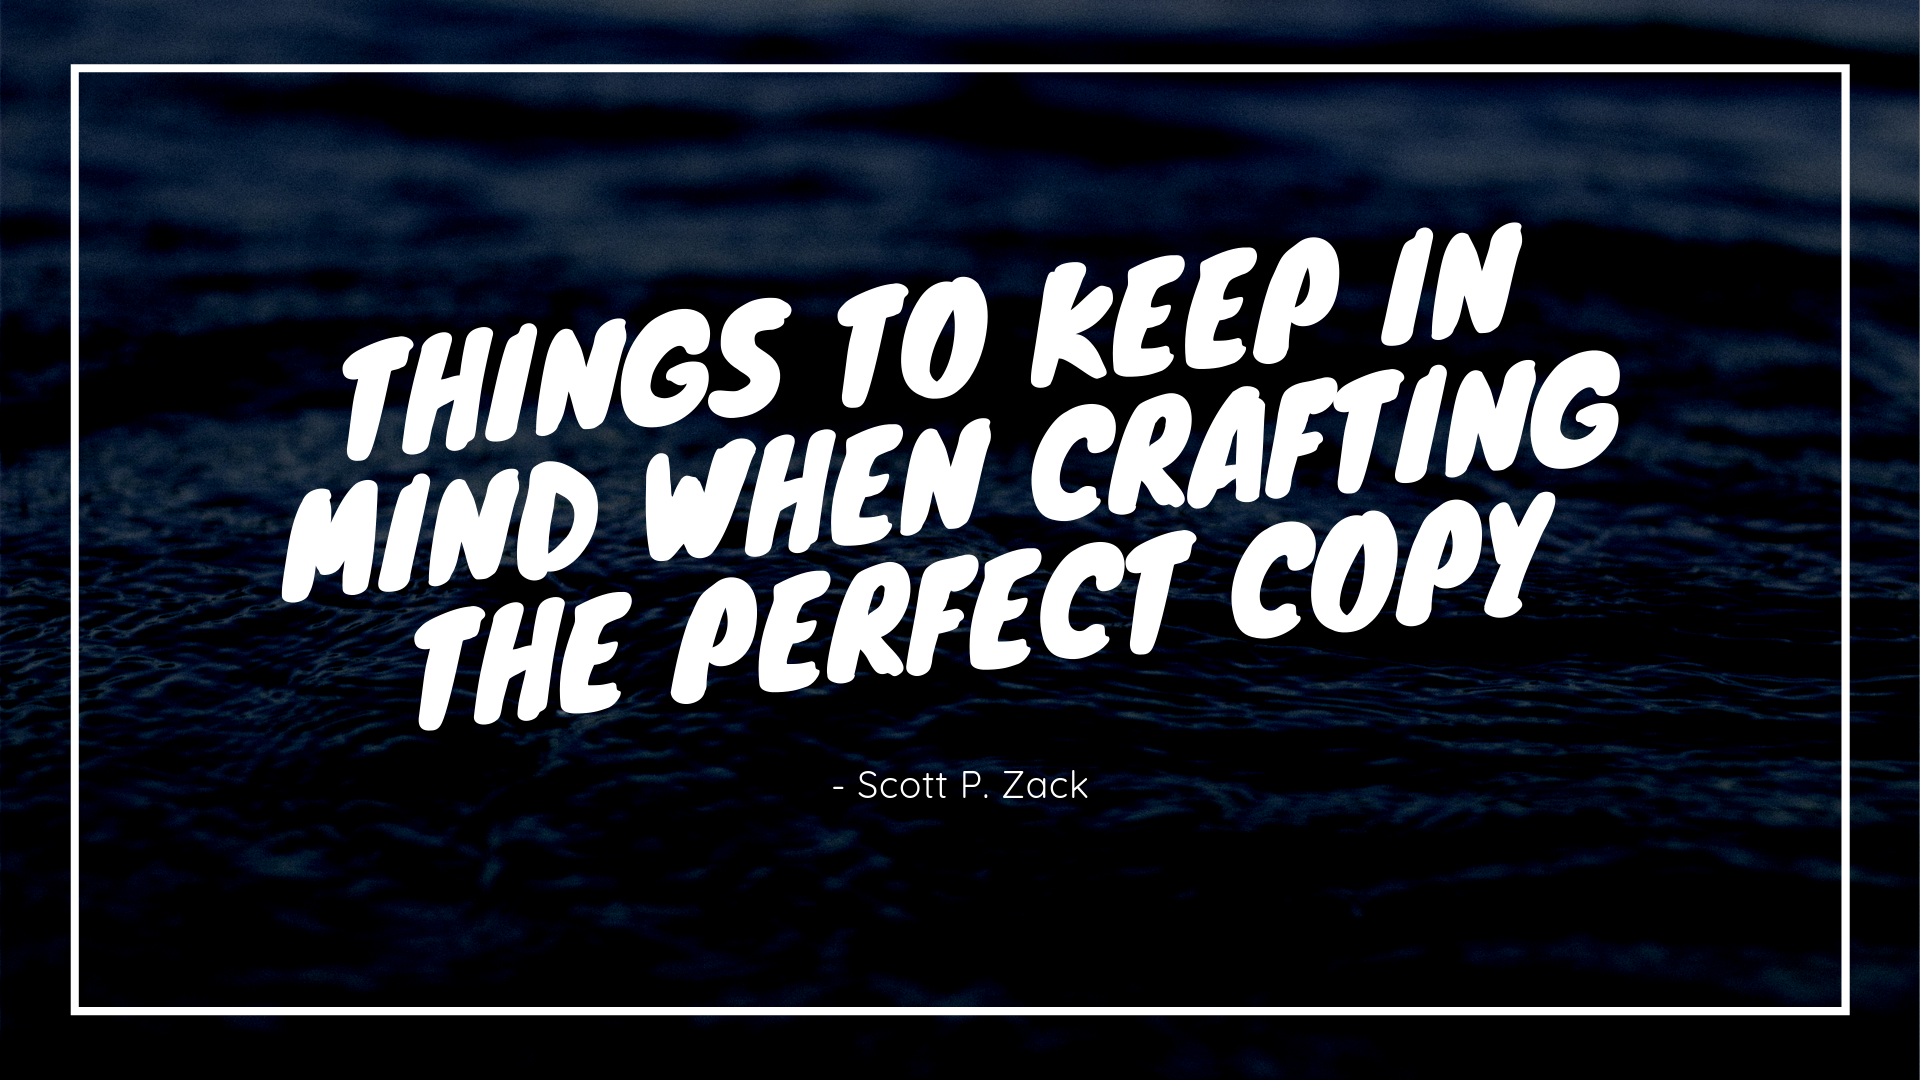 Things to keep in mind when crafting the perfect copy 7